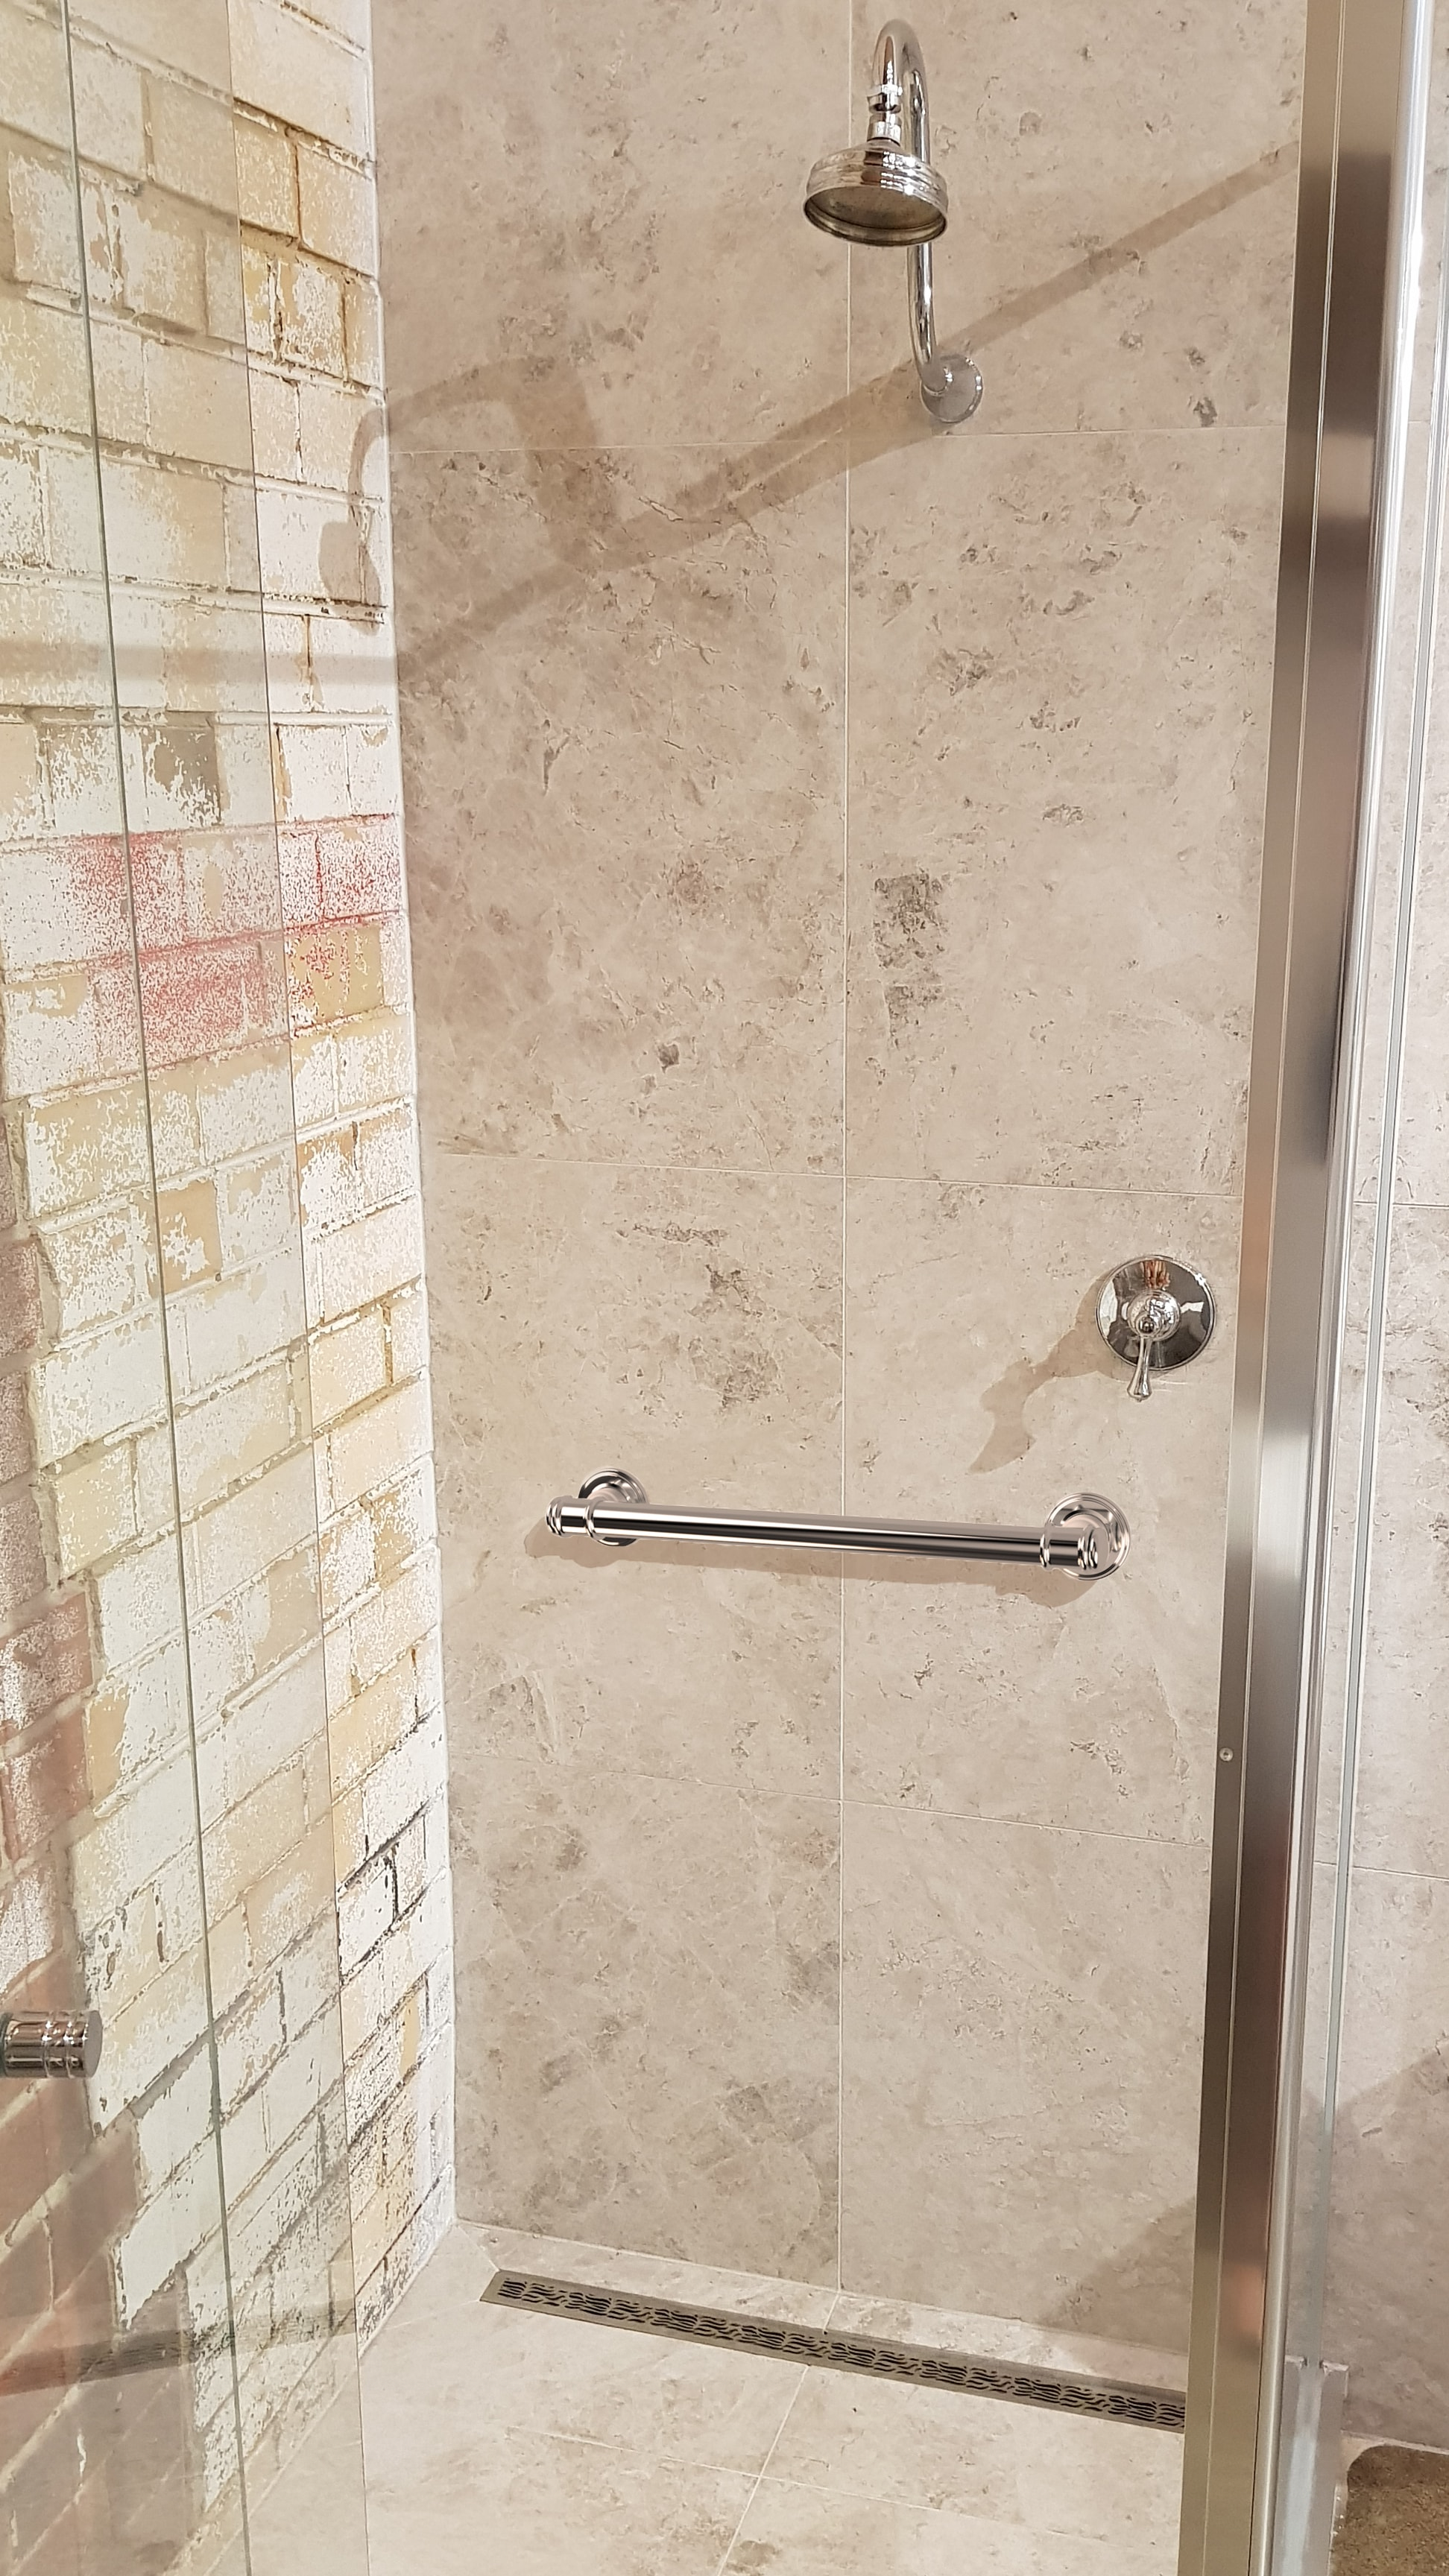 Availcare Glance Bathroom Grab Rail 30mm Chrome AS1428.1 Approved!